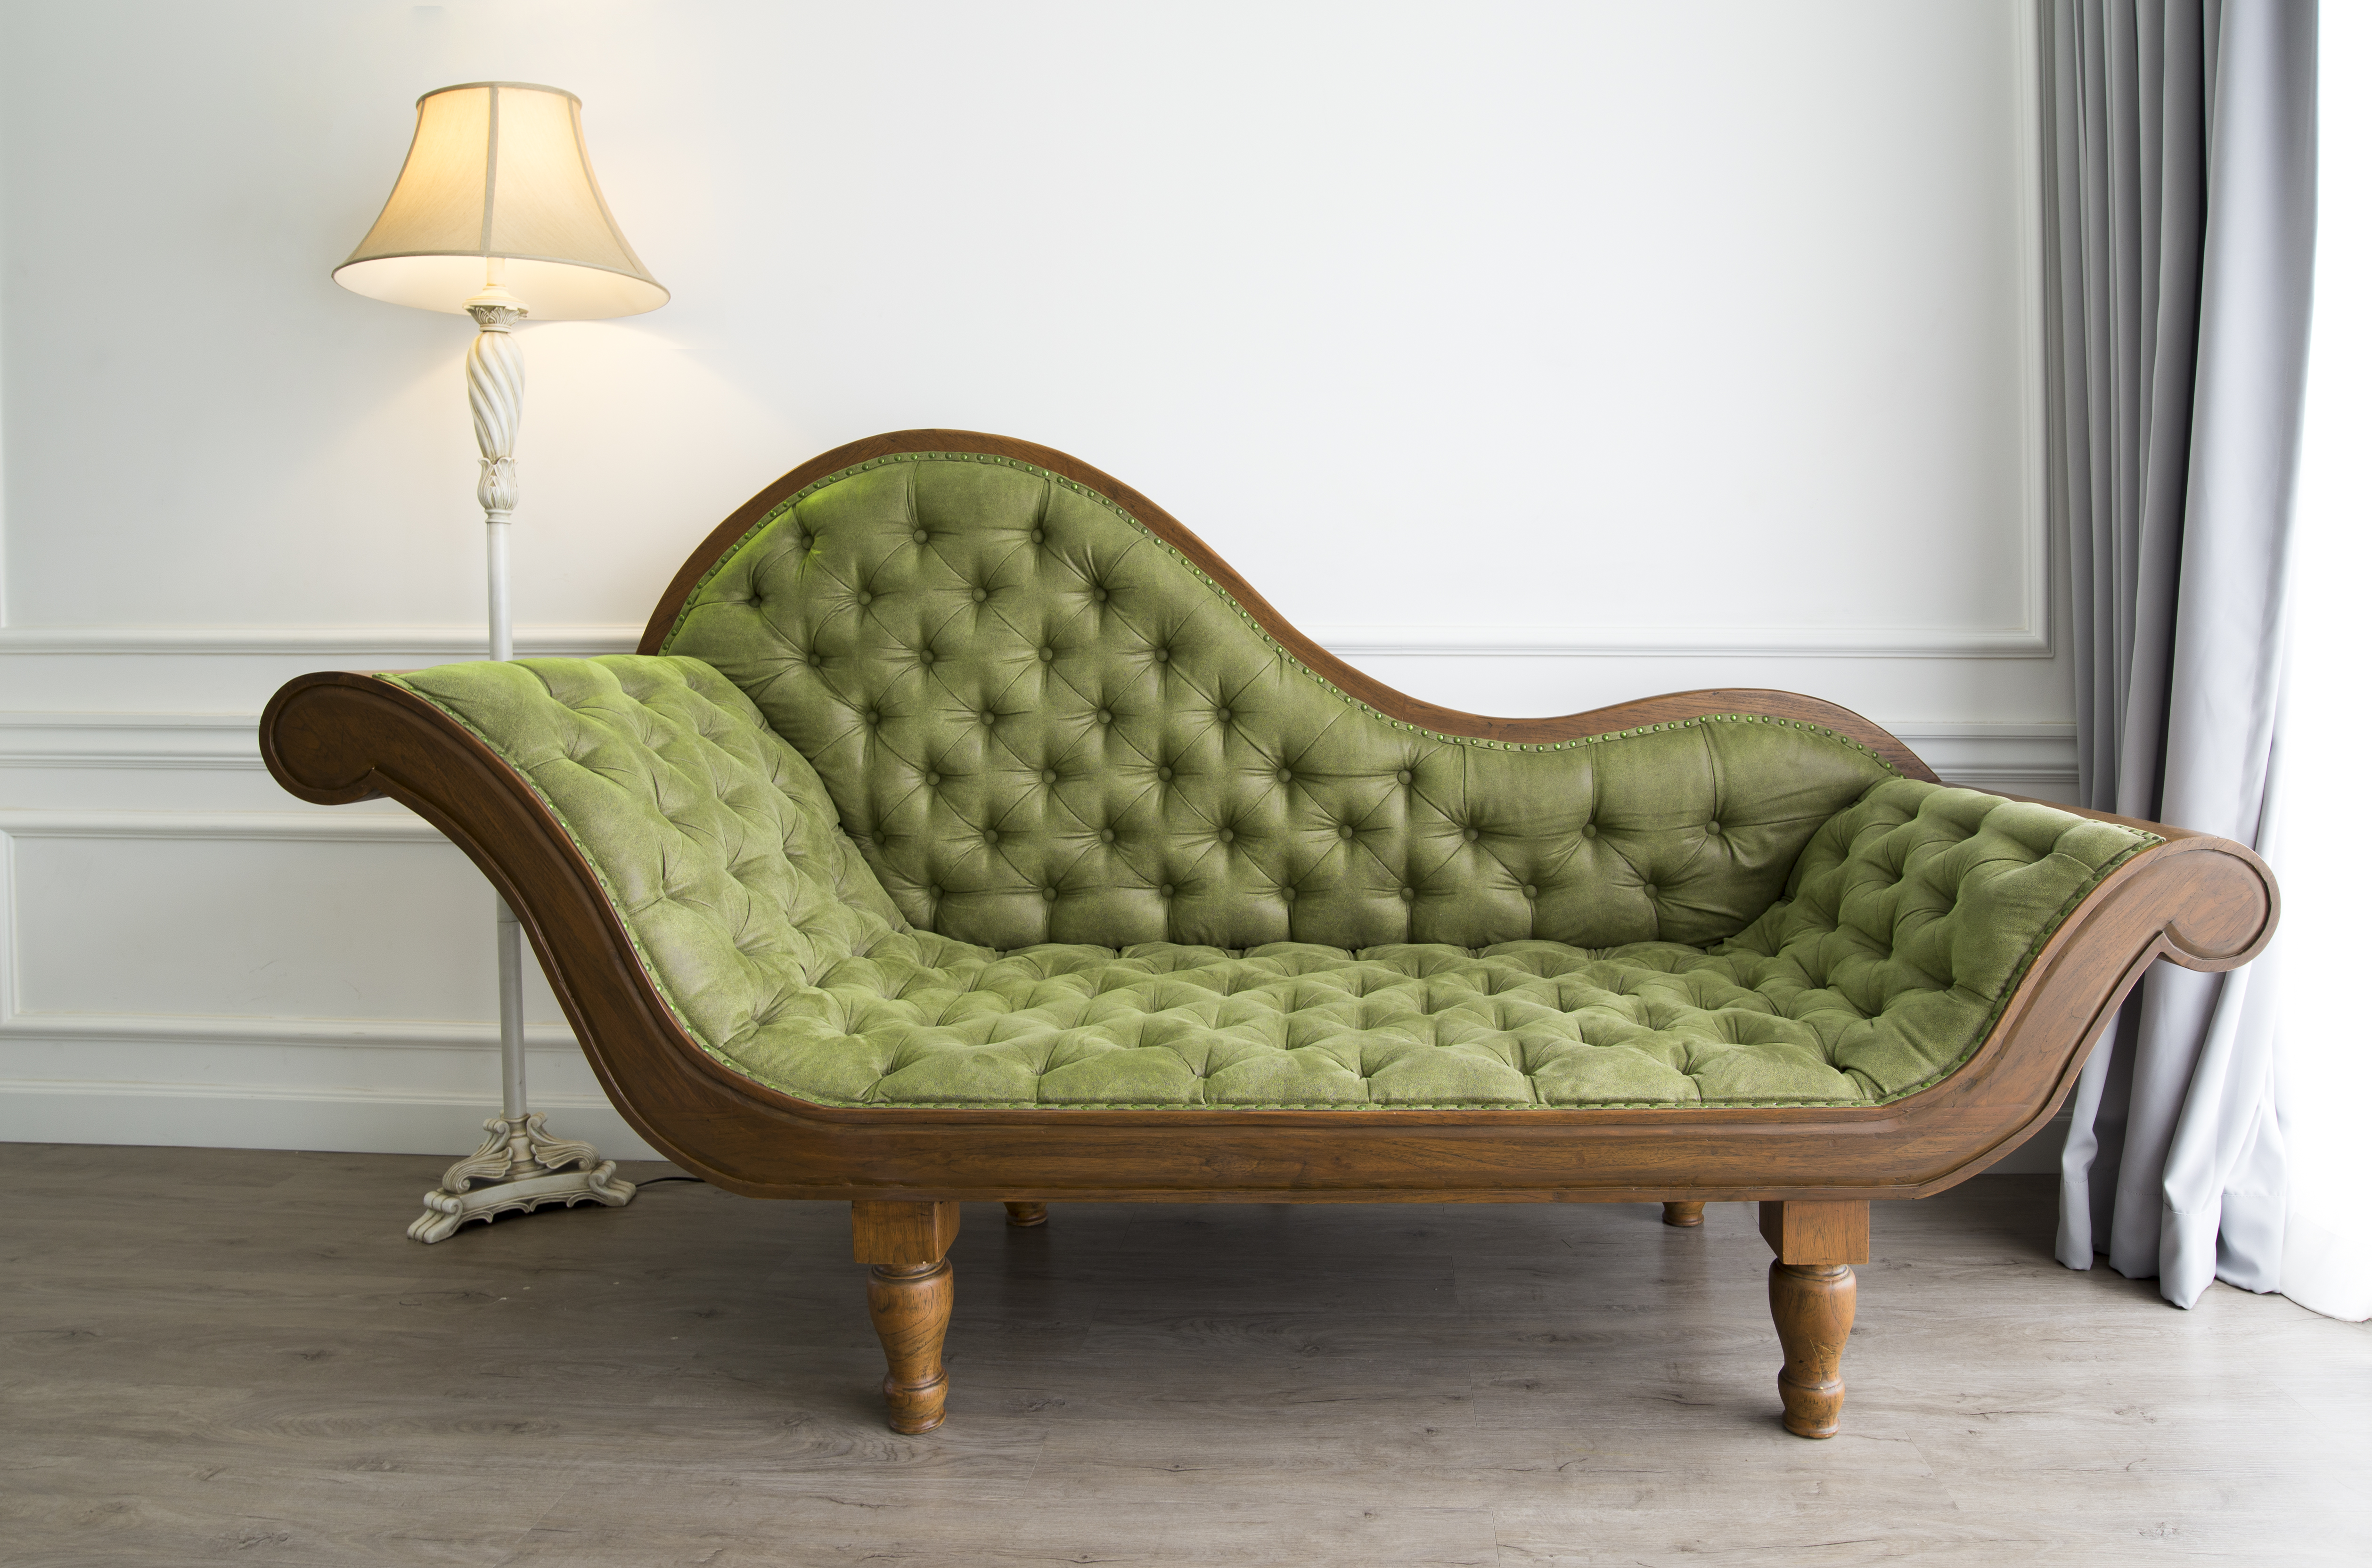 the average cost to reupholster a couch home guides sf gate rh homeguides sfgate com how to cover a sofa bed Fabric to Recover Sofas